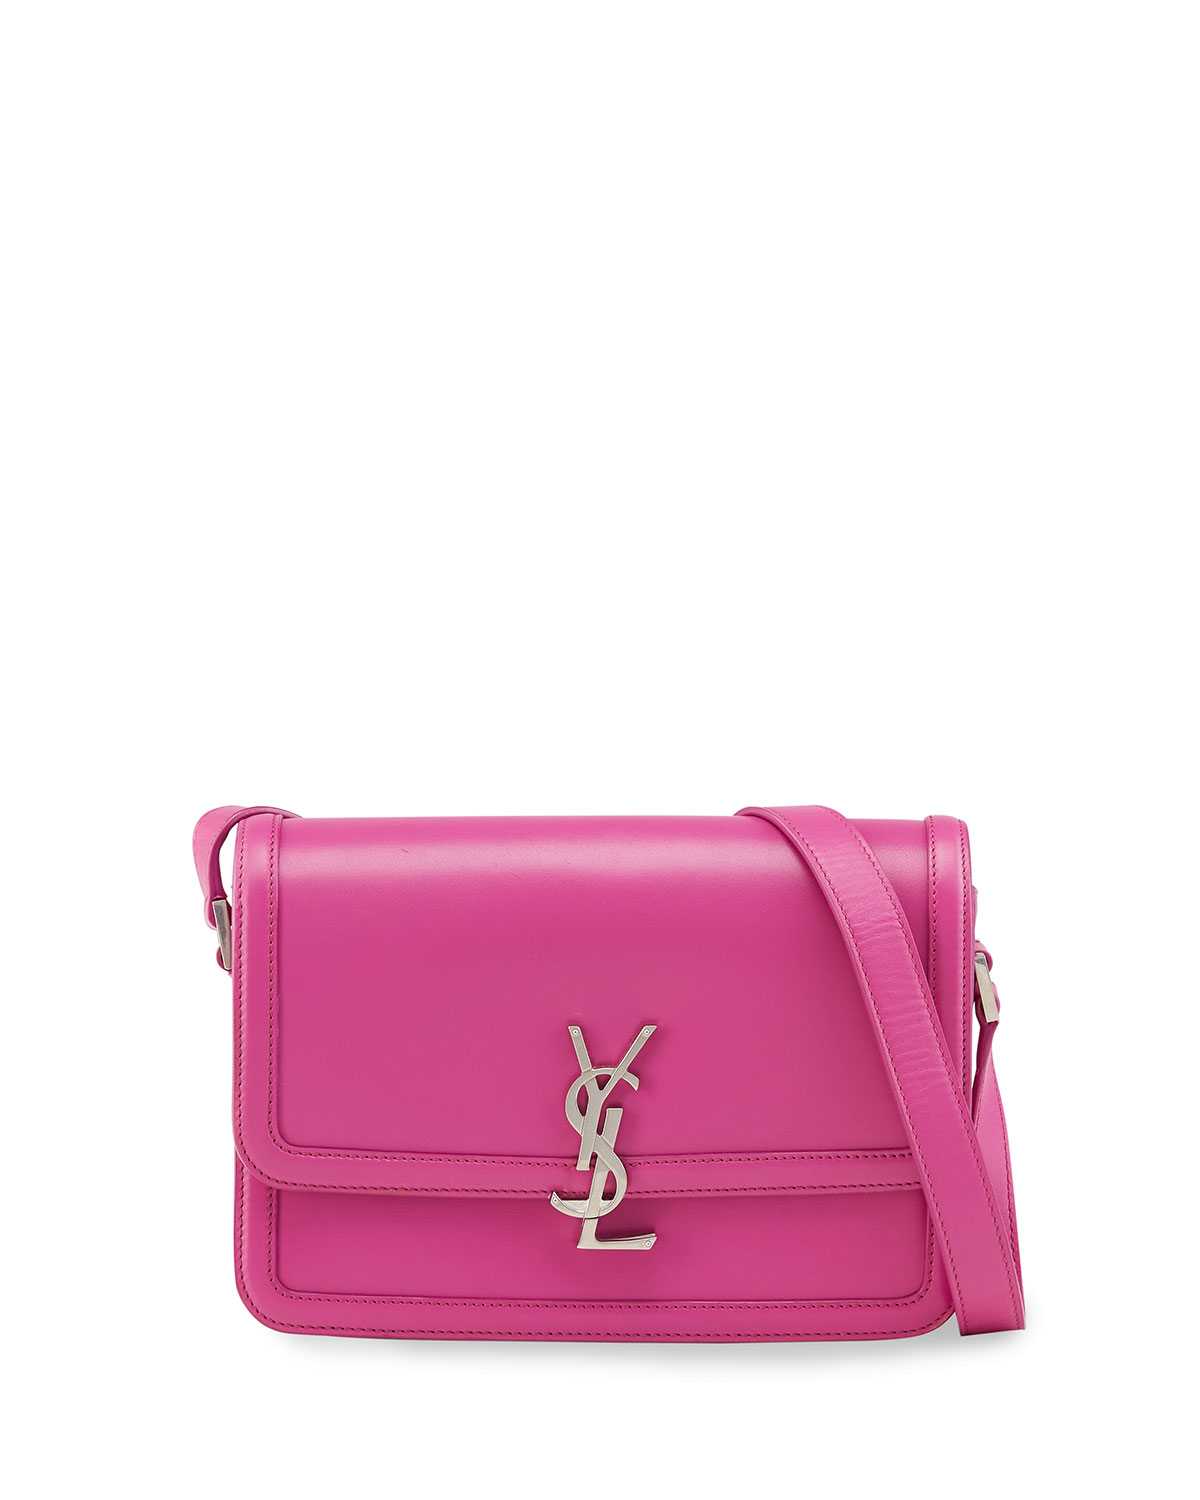 Solferino Medium YSL Leather Satchel Bag